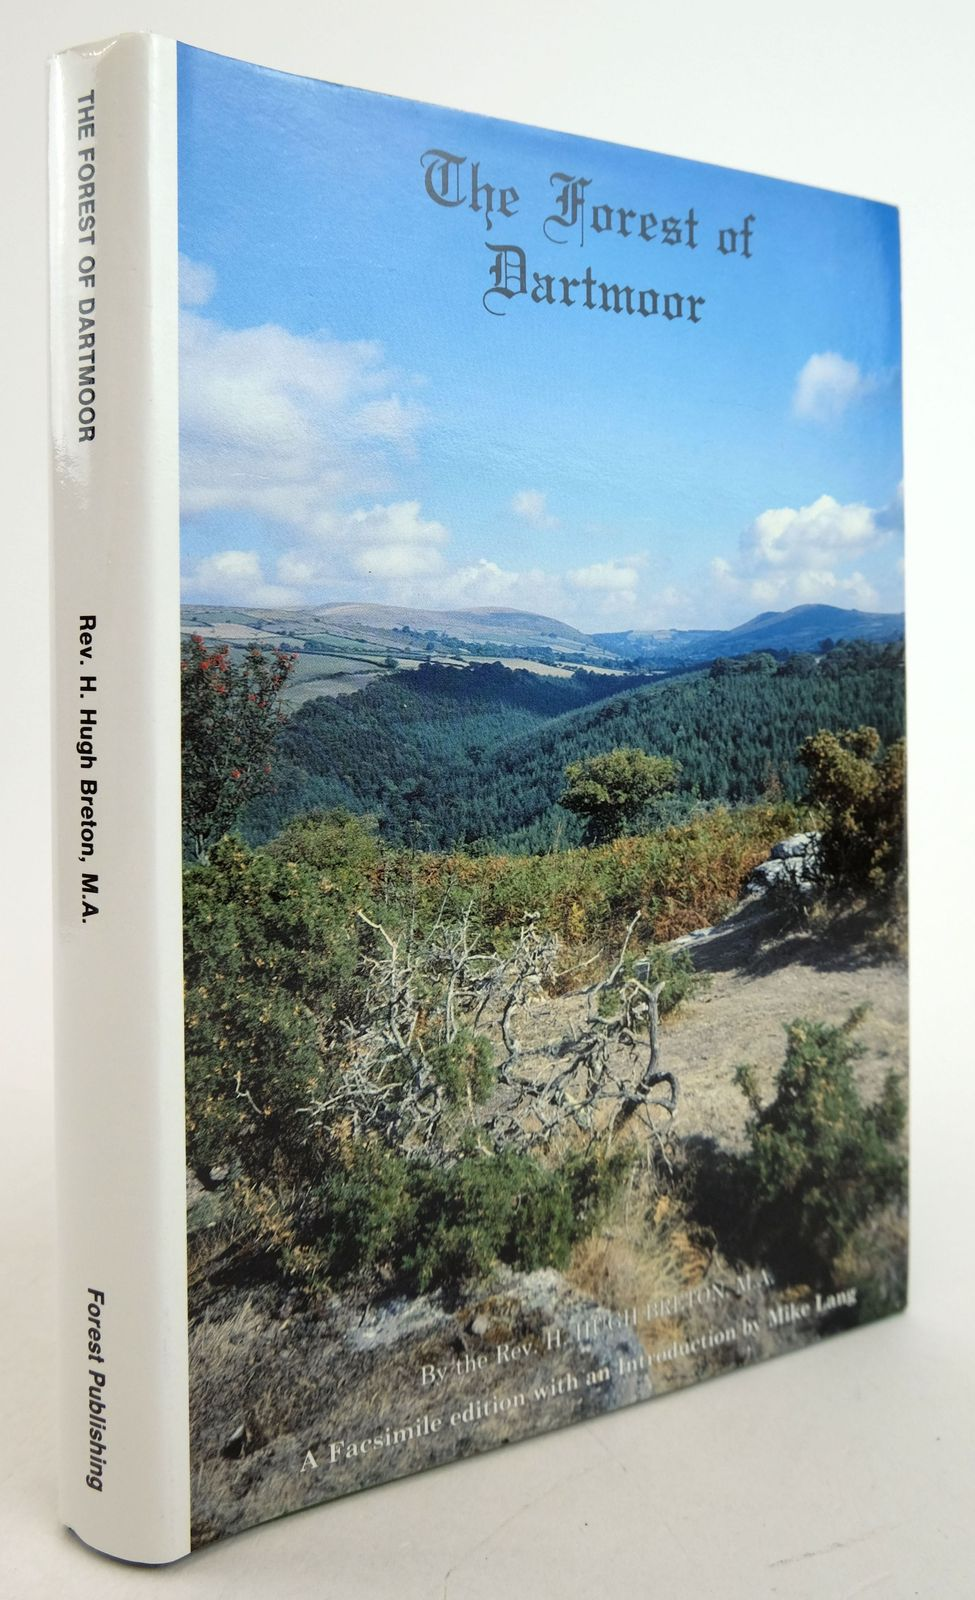 Photo of THE FOREST OF DARTMOOR- Stock Number: 1819763